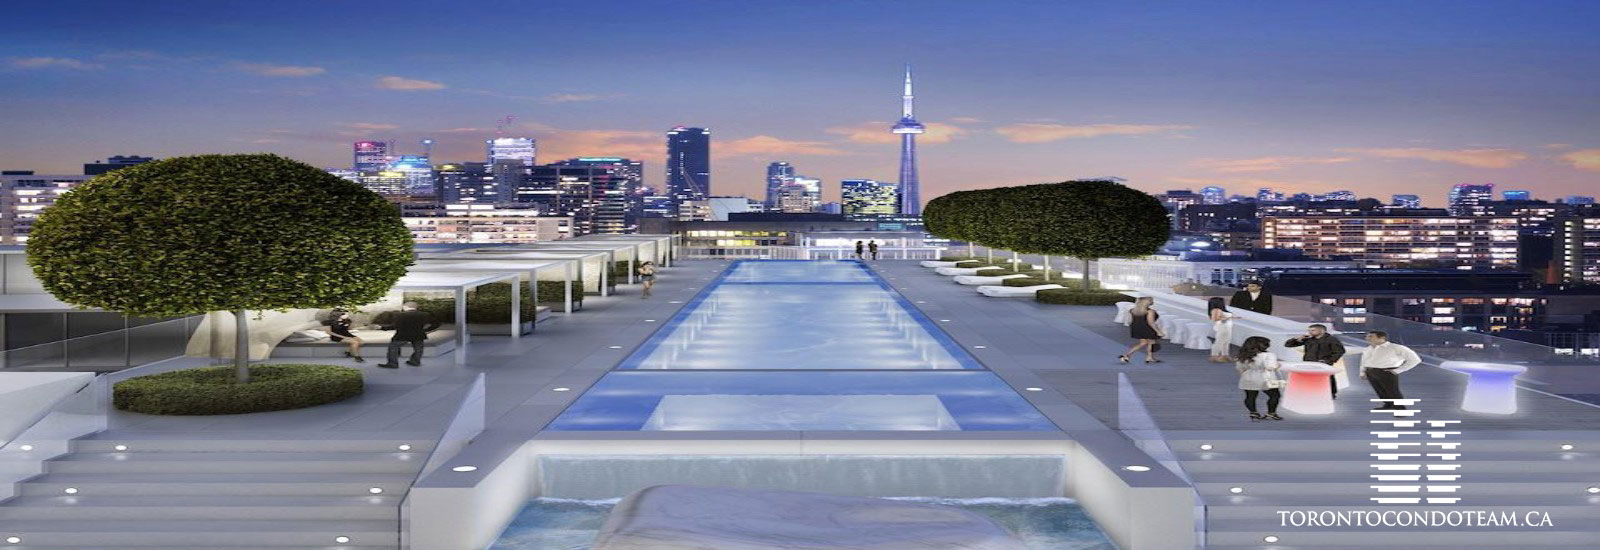 2131 Yonge Street Condos For Sale